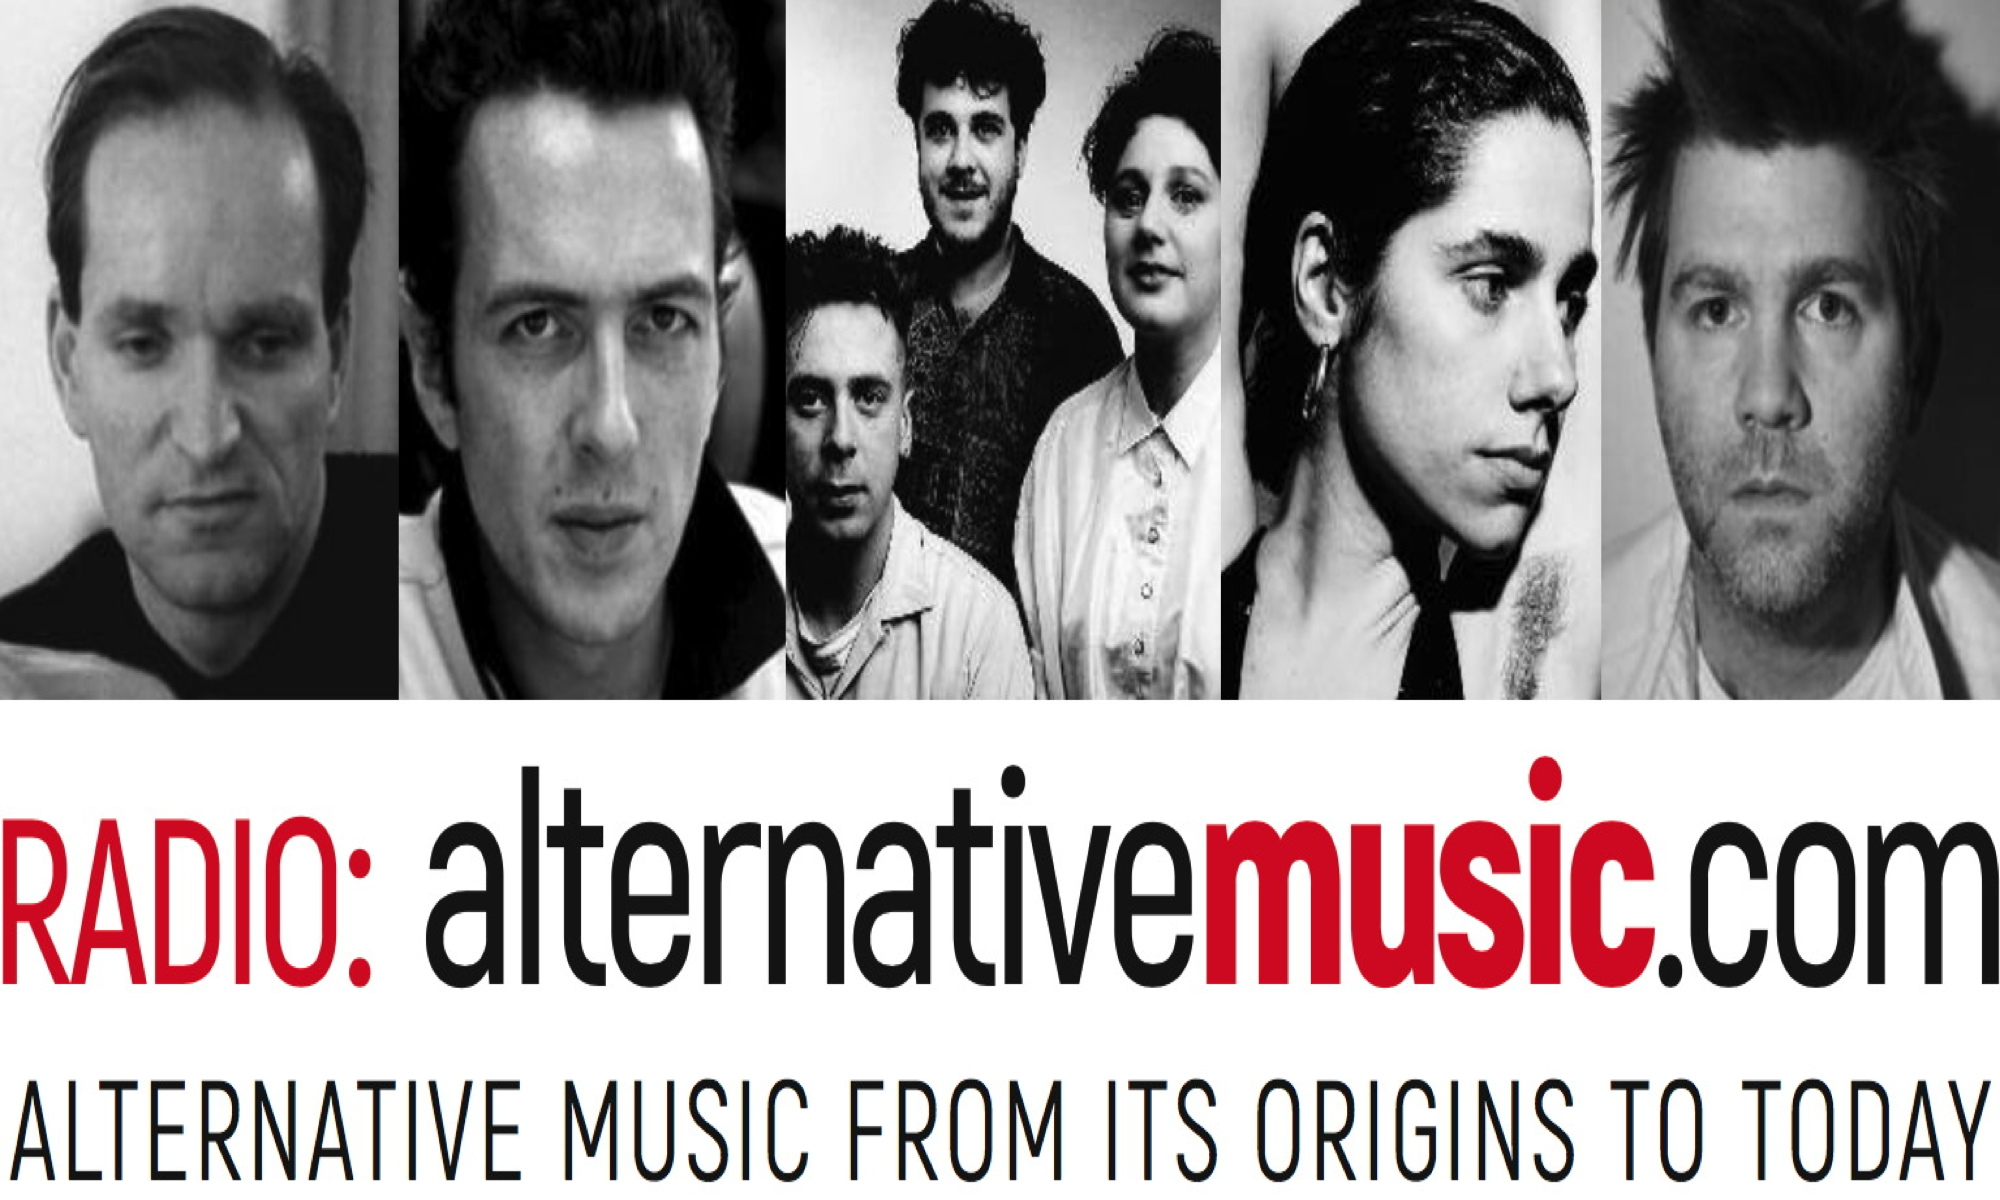 AlternativeMusic.com